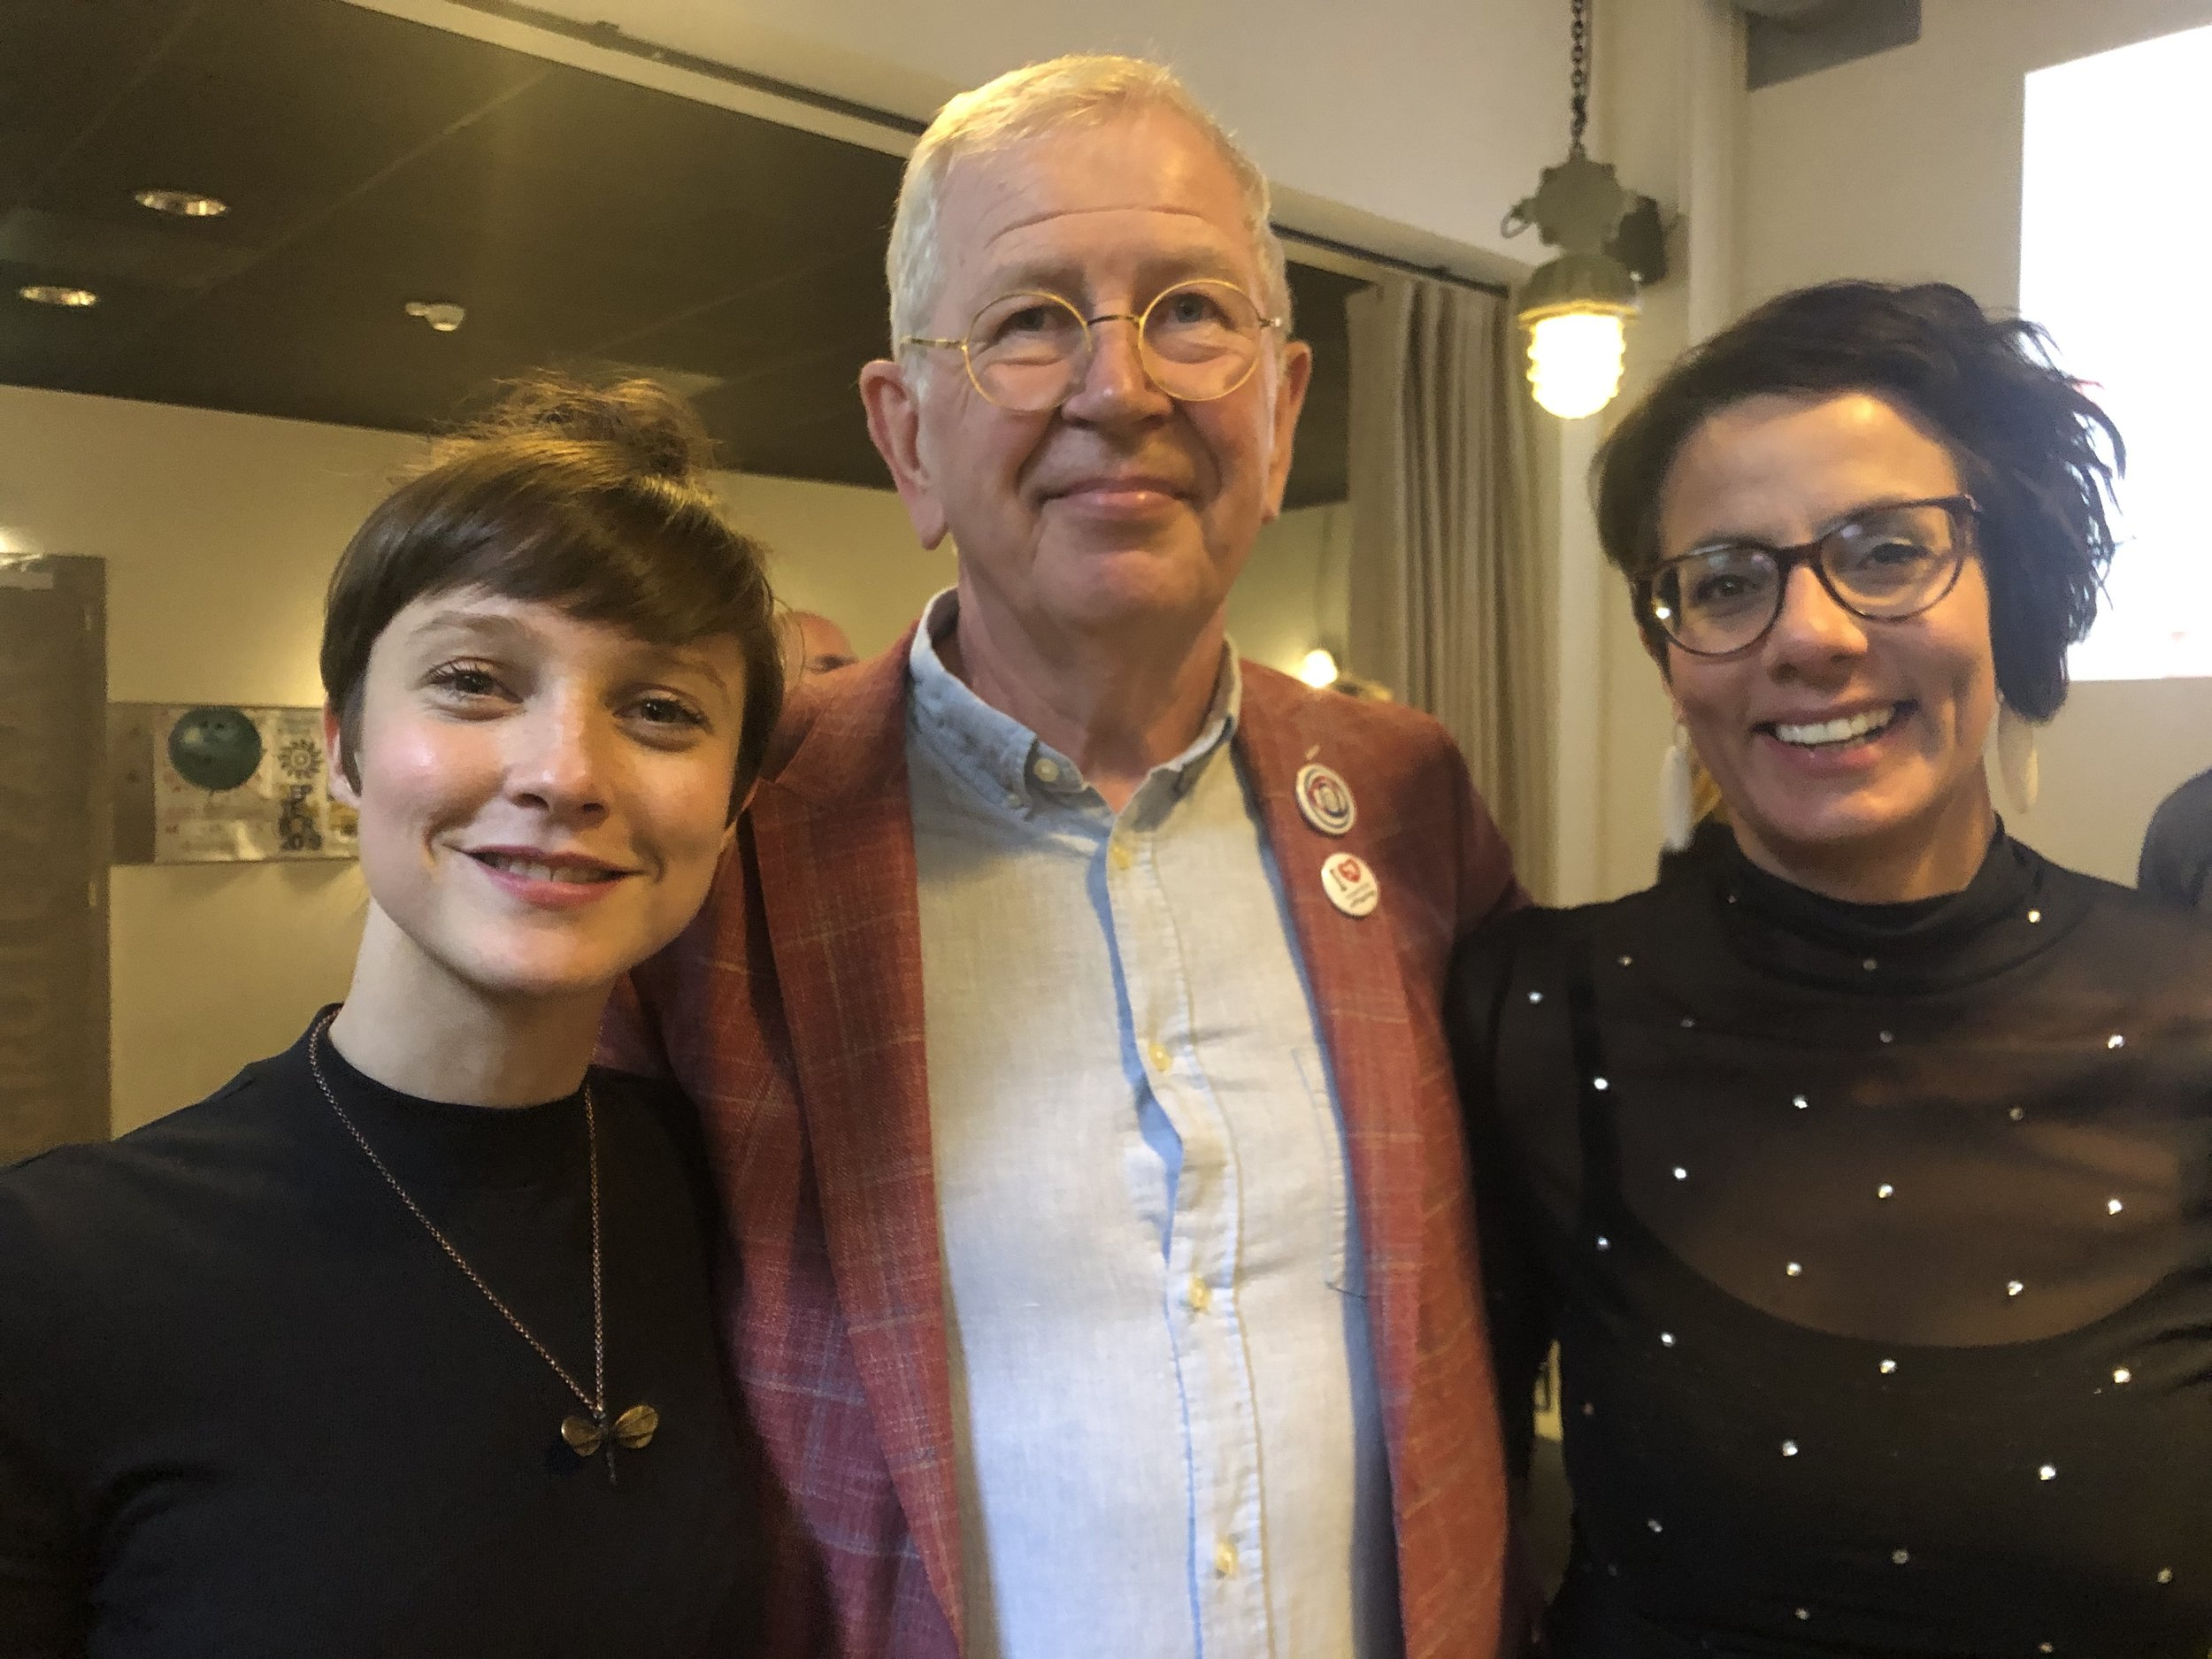 Composer Genevieve Murphy, commissioner Charles Davidson, and Claire Edwardes from Ensemble Offspring